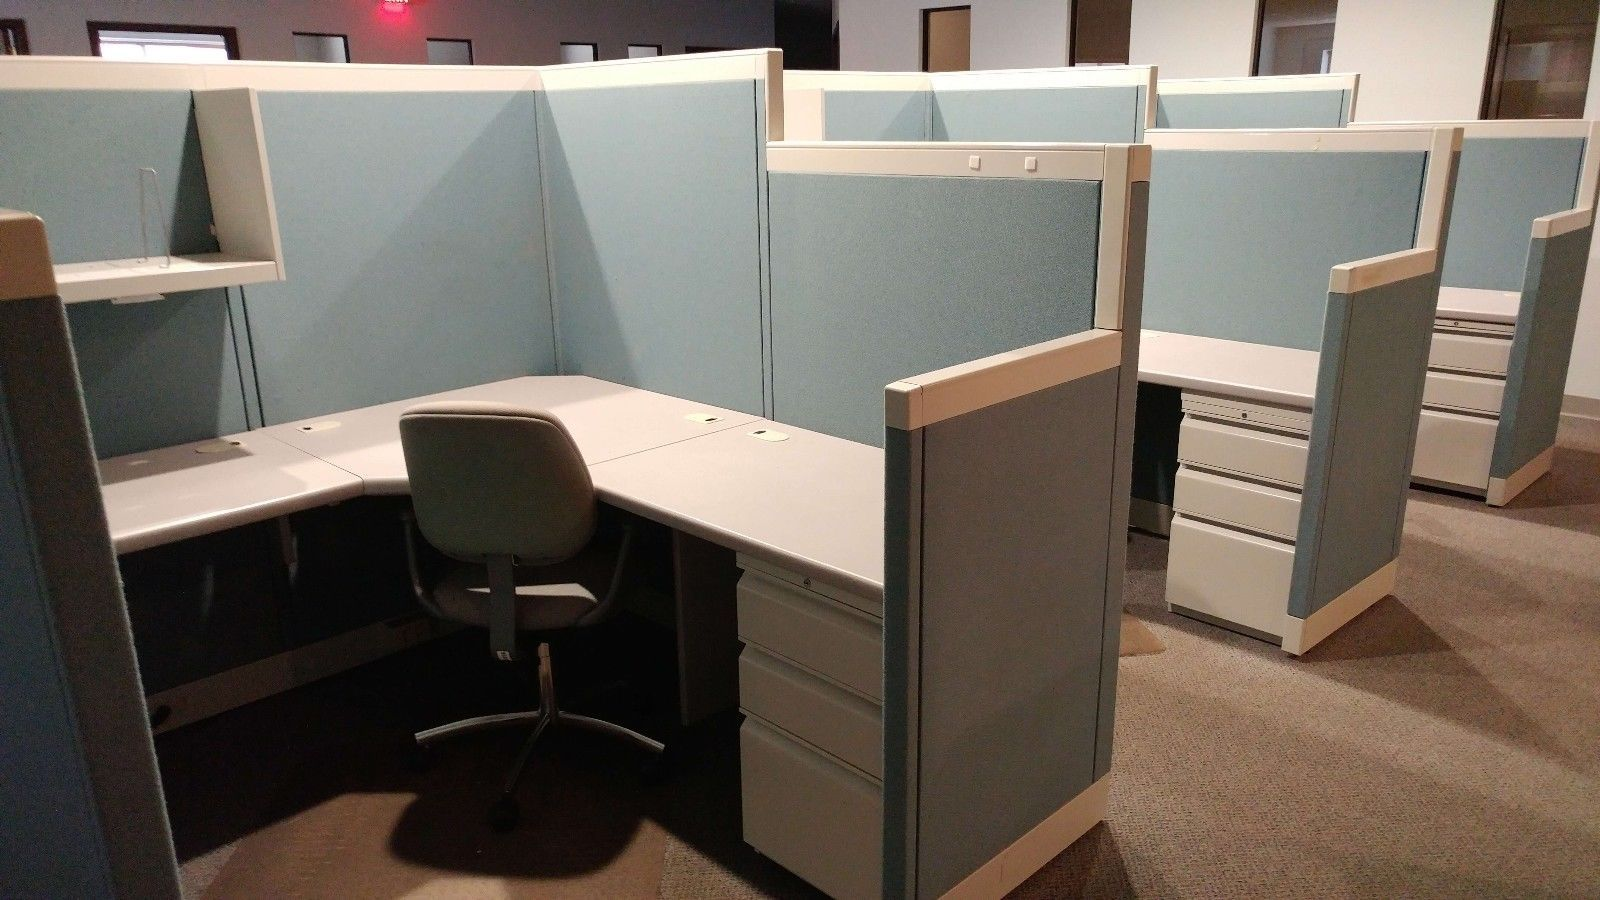 allsteel access chair instructions stack chairs for less used office cubicles concensys 6x6